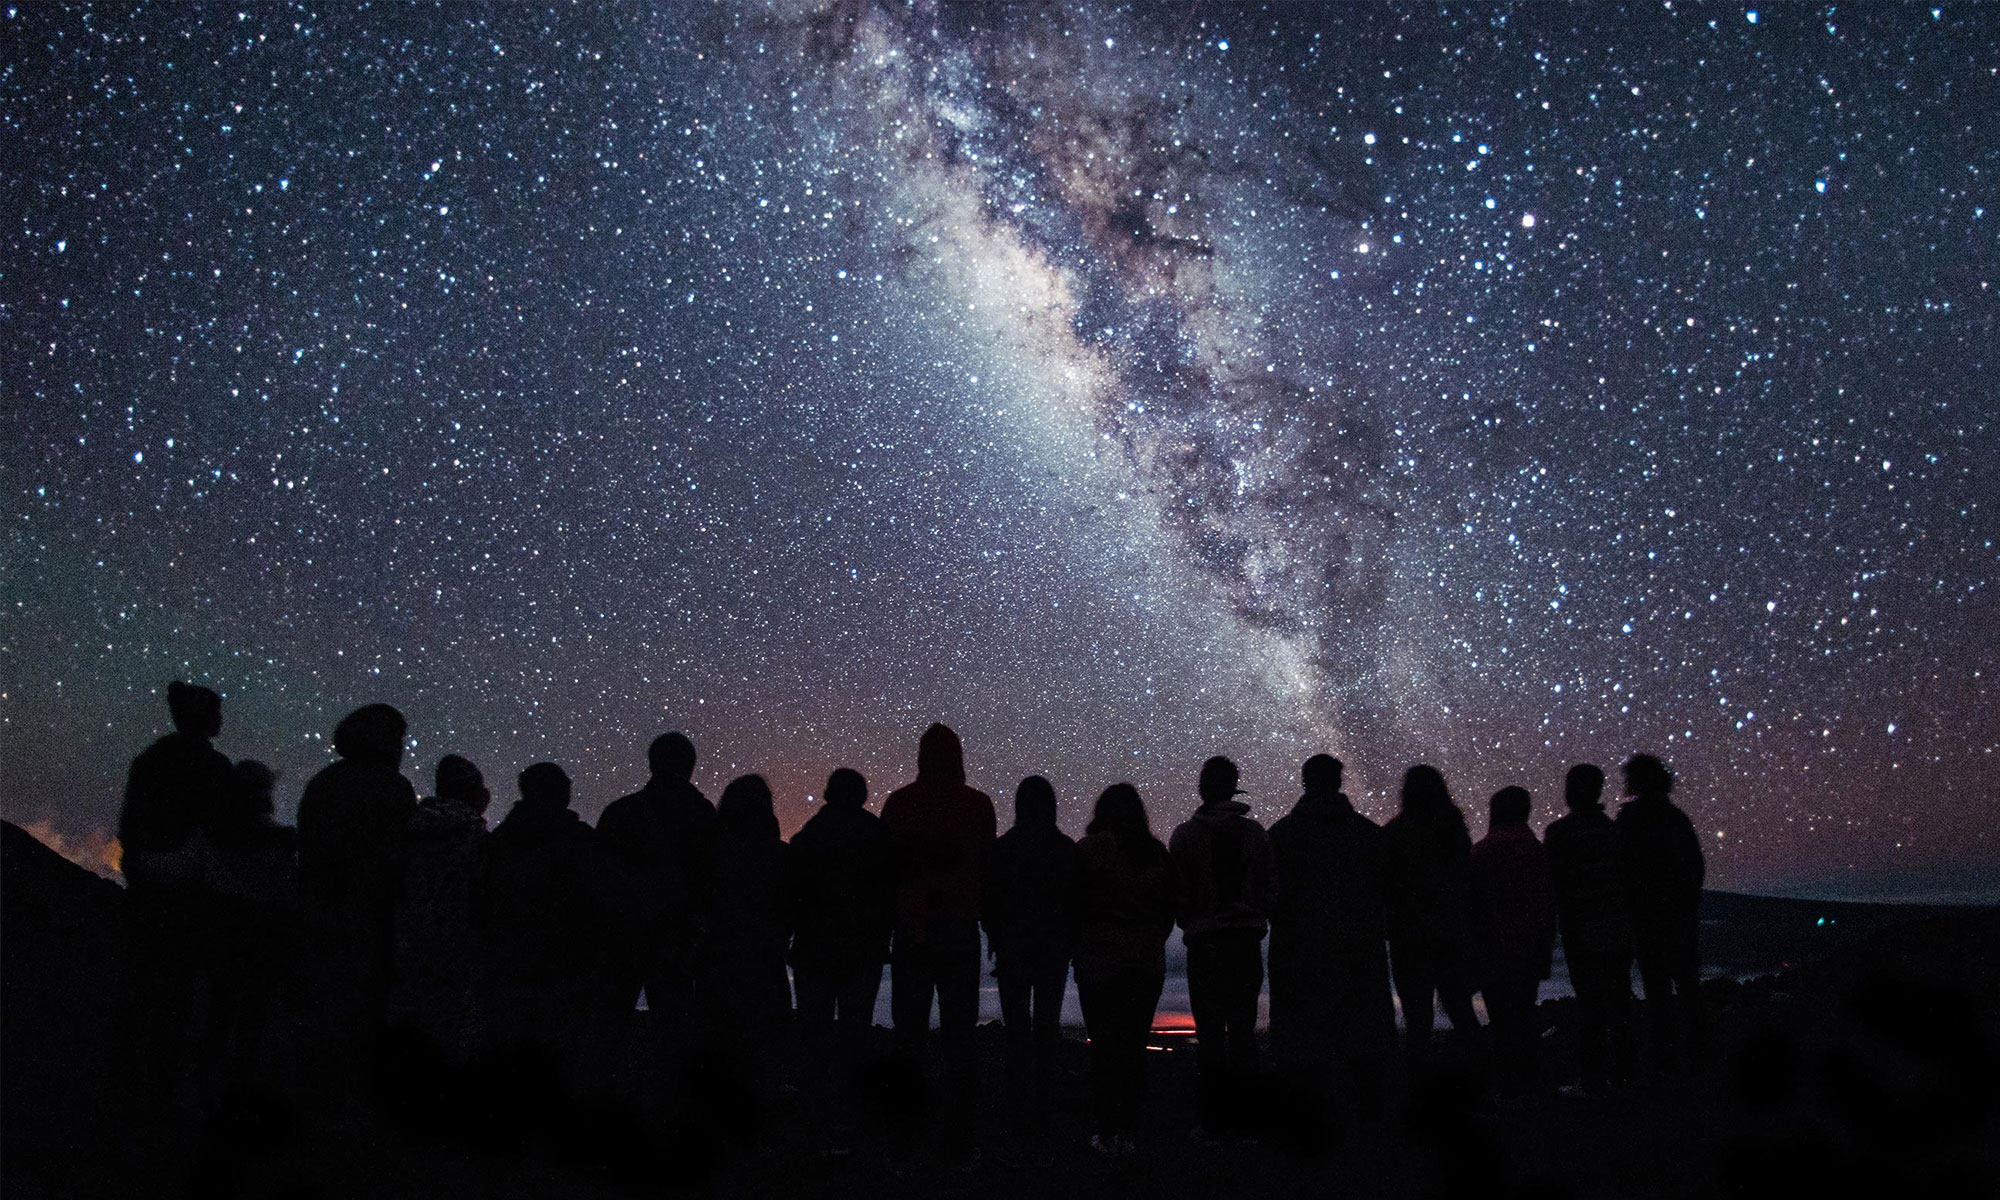 Photo of a group of people silhouetted against the Milky Way.